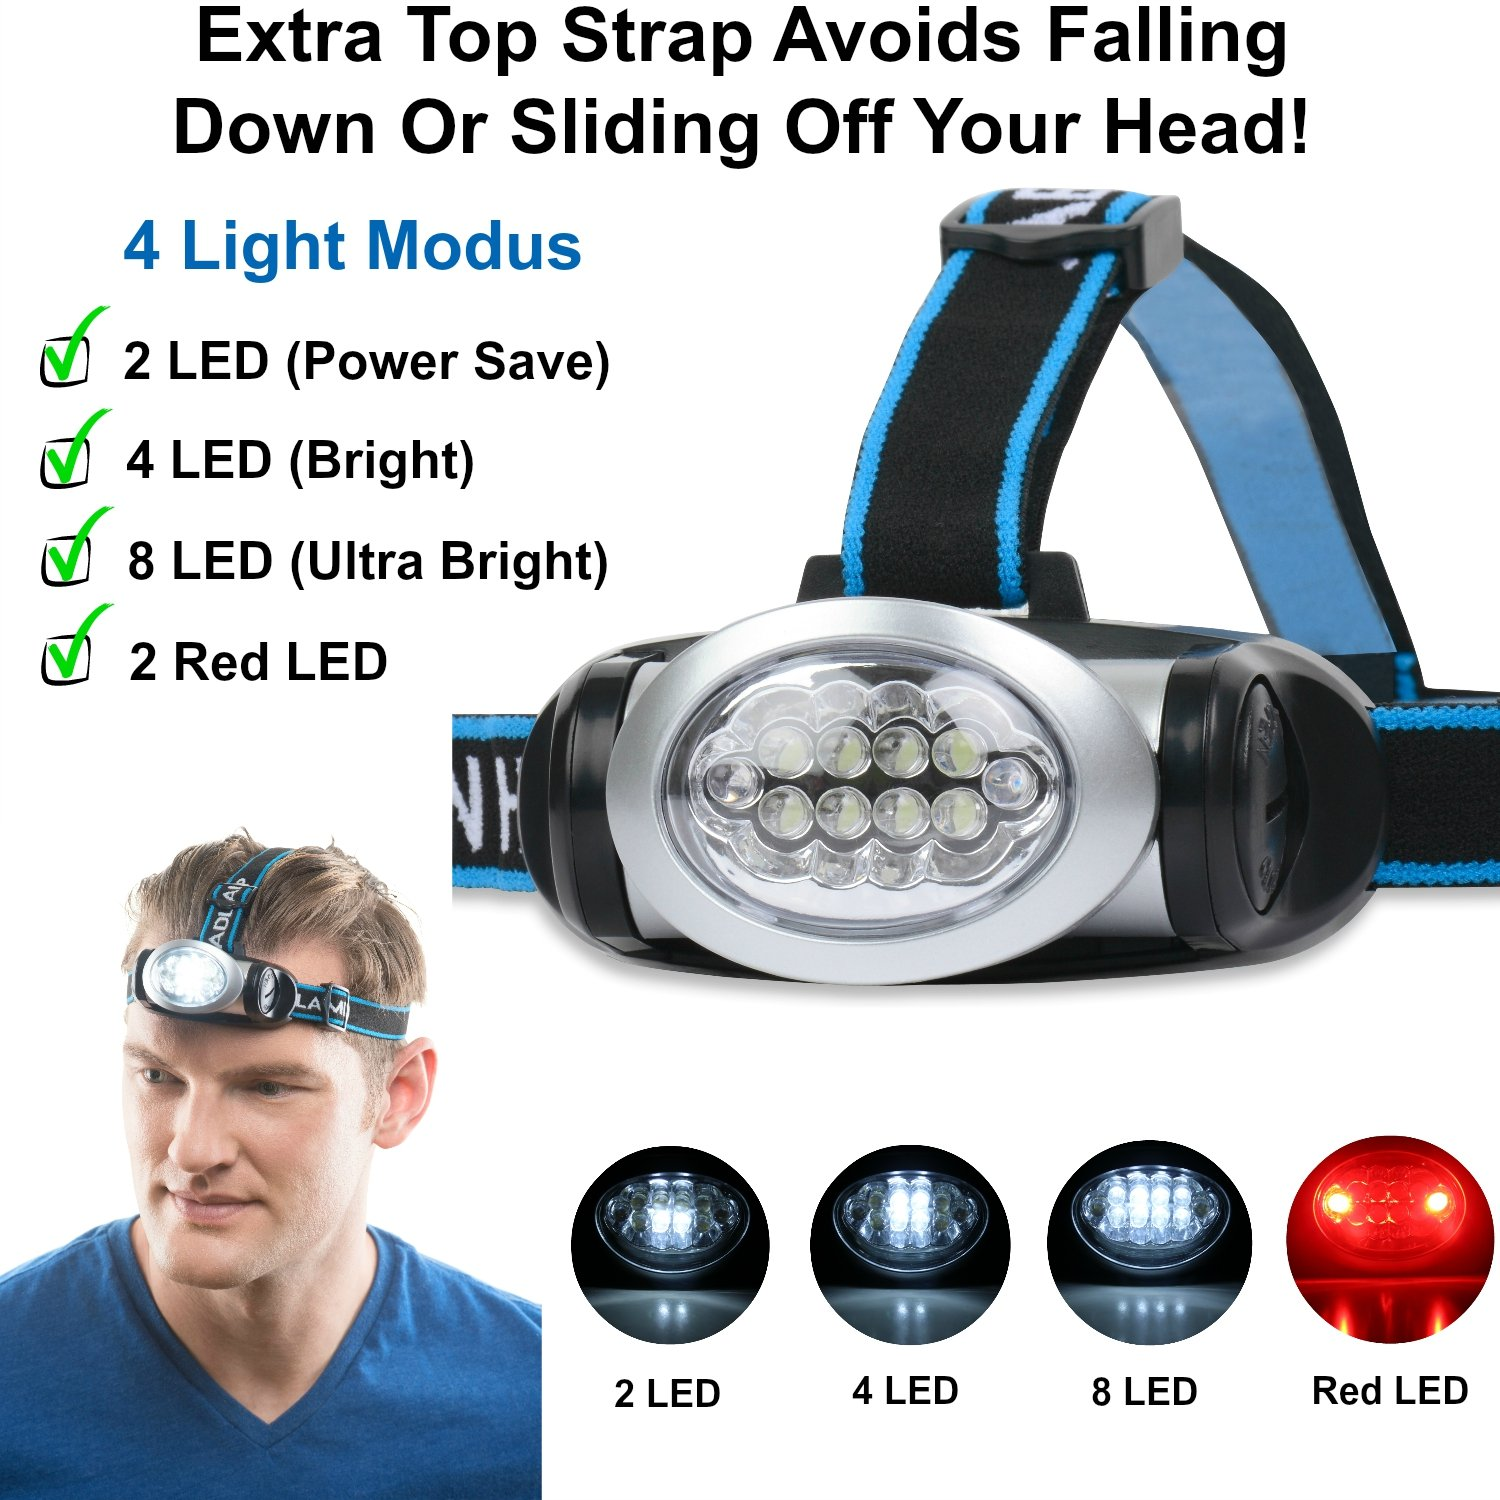 LED Head Torch with Red Lights for Running Camping Reading